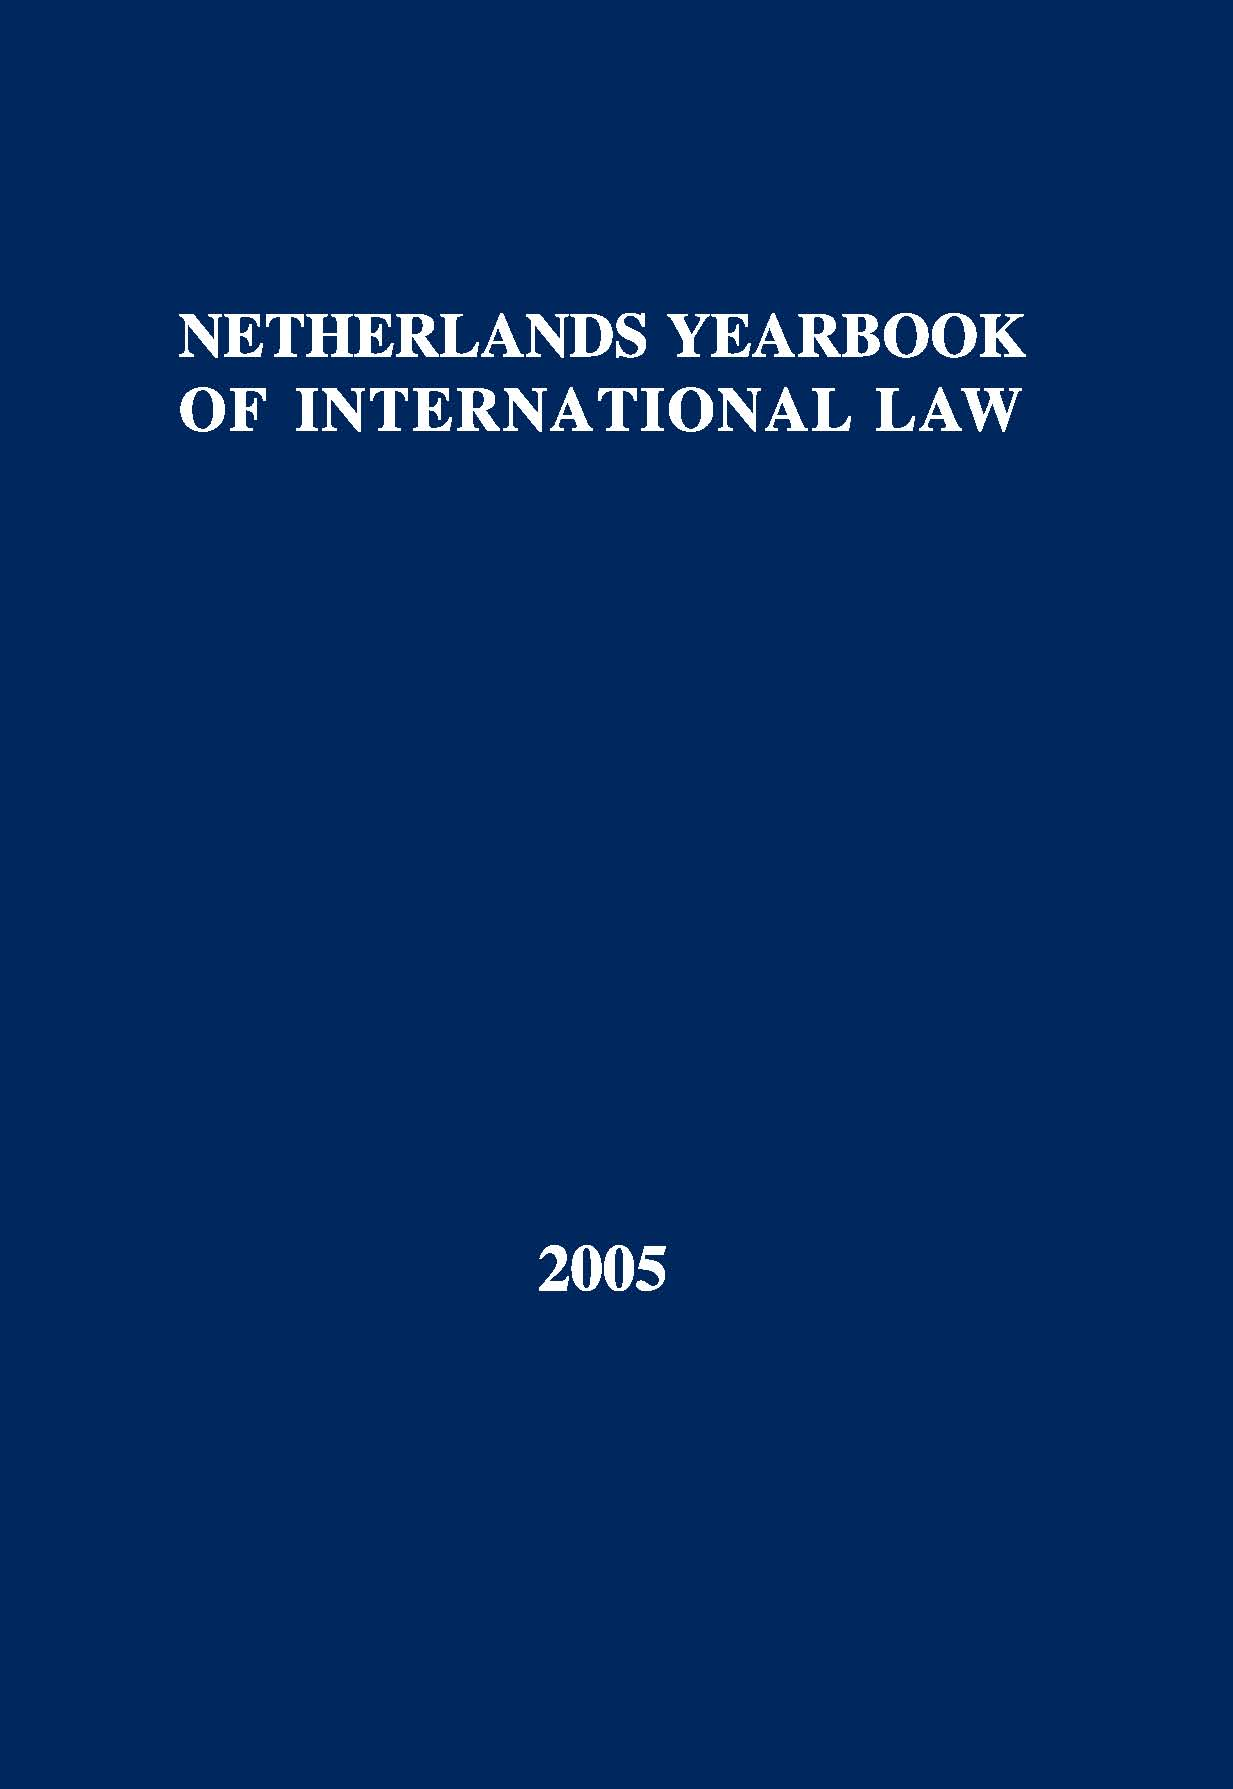 Netherlands Yearbook of International Law -Volume 36, 2005